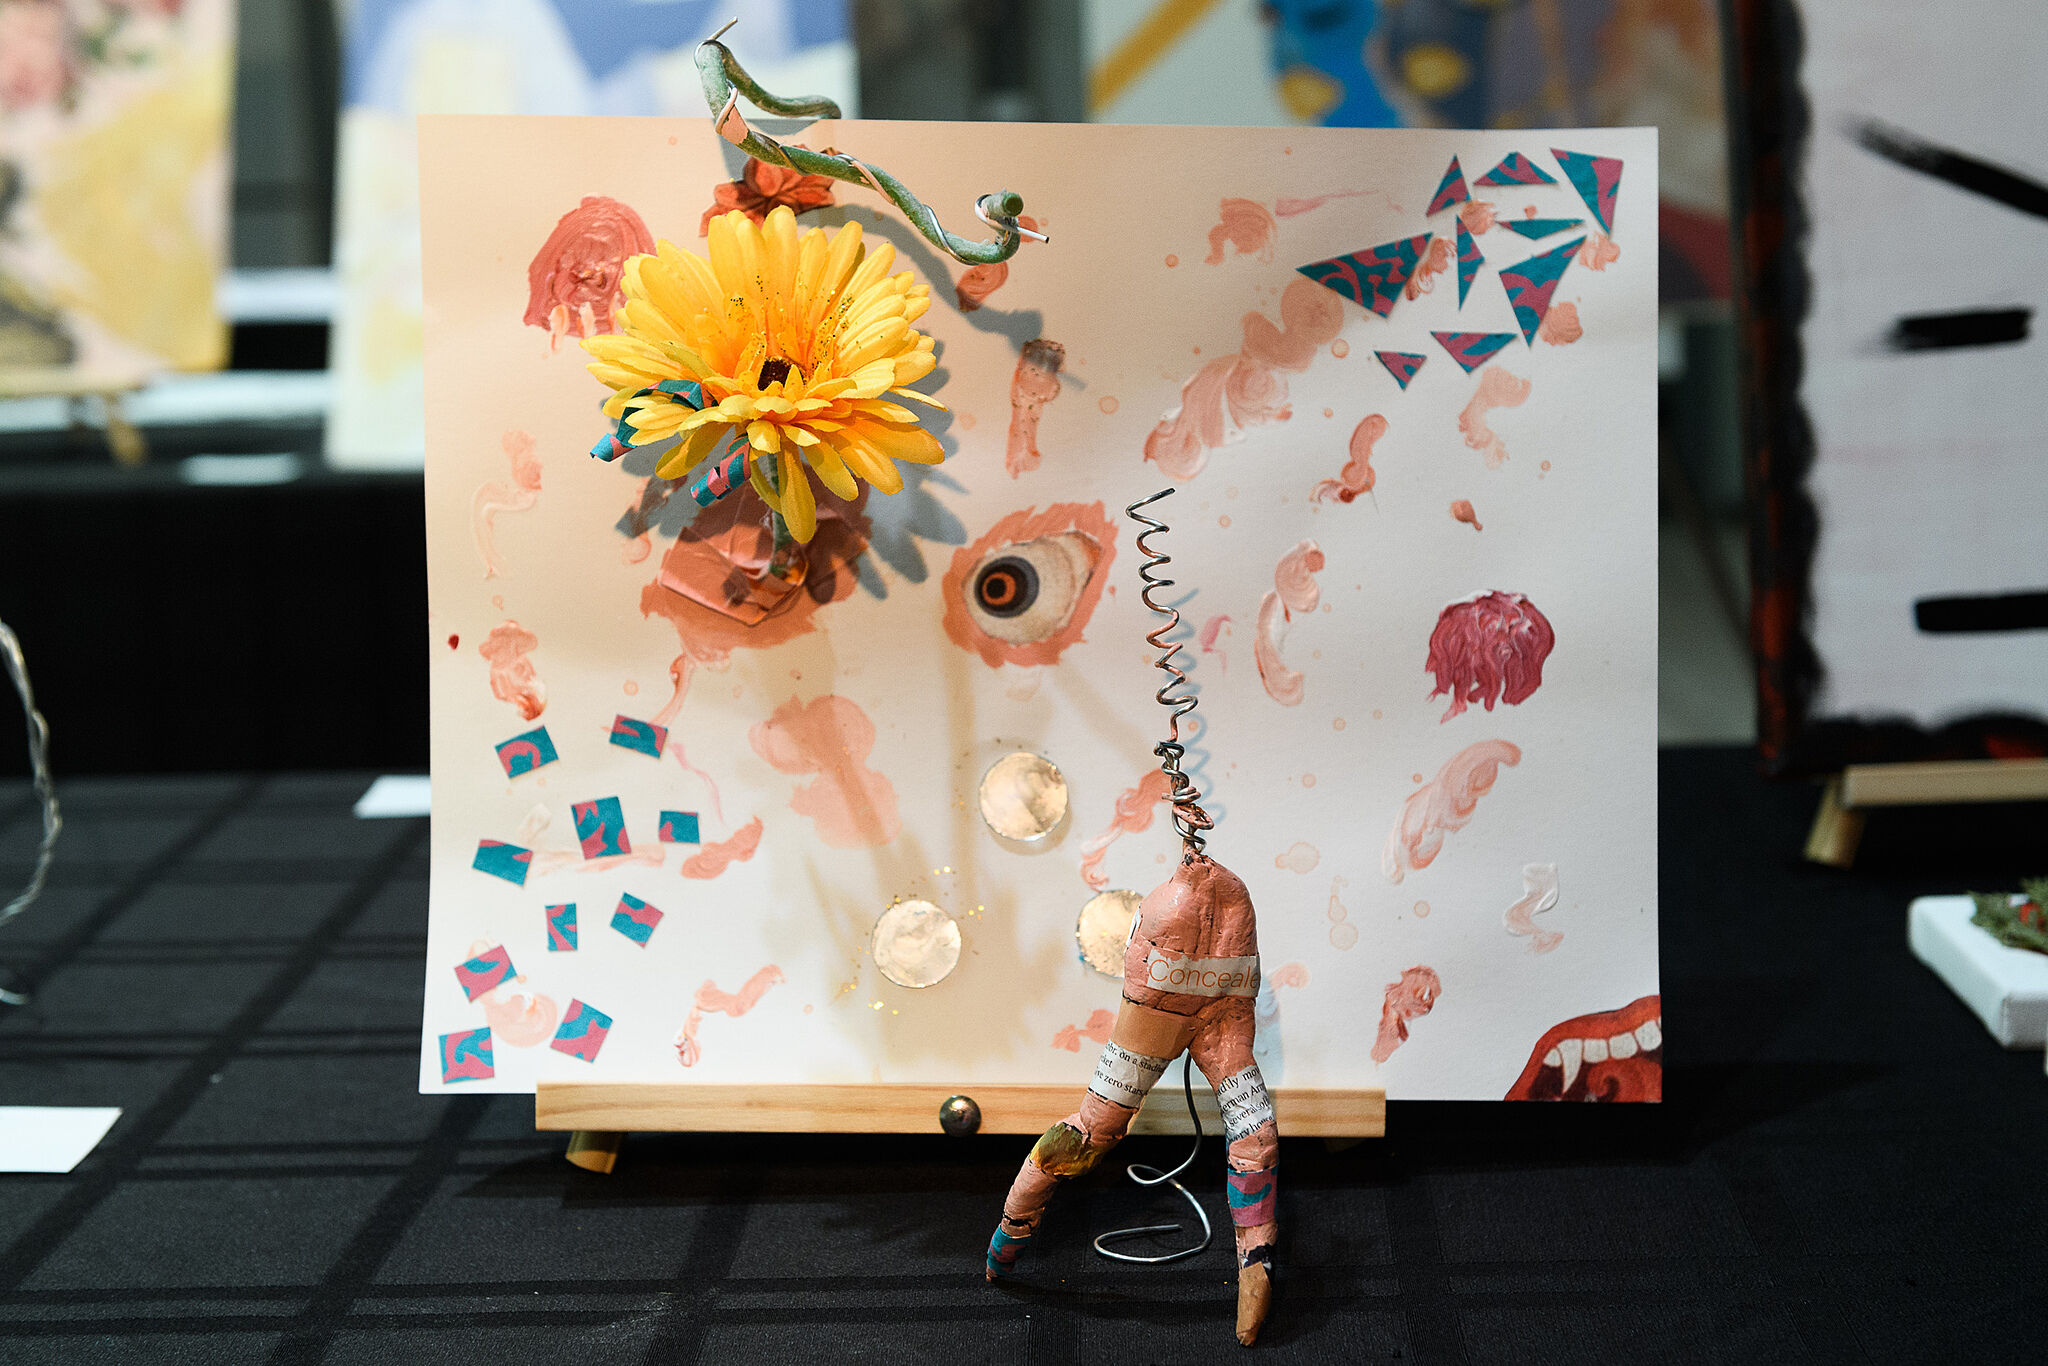 Painting with a flower in it.